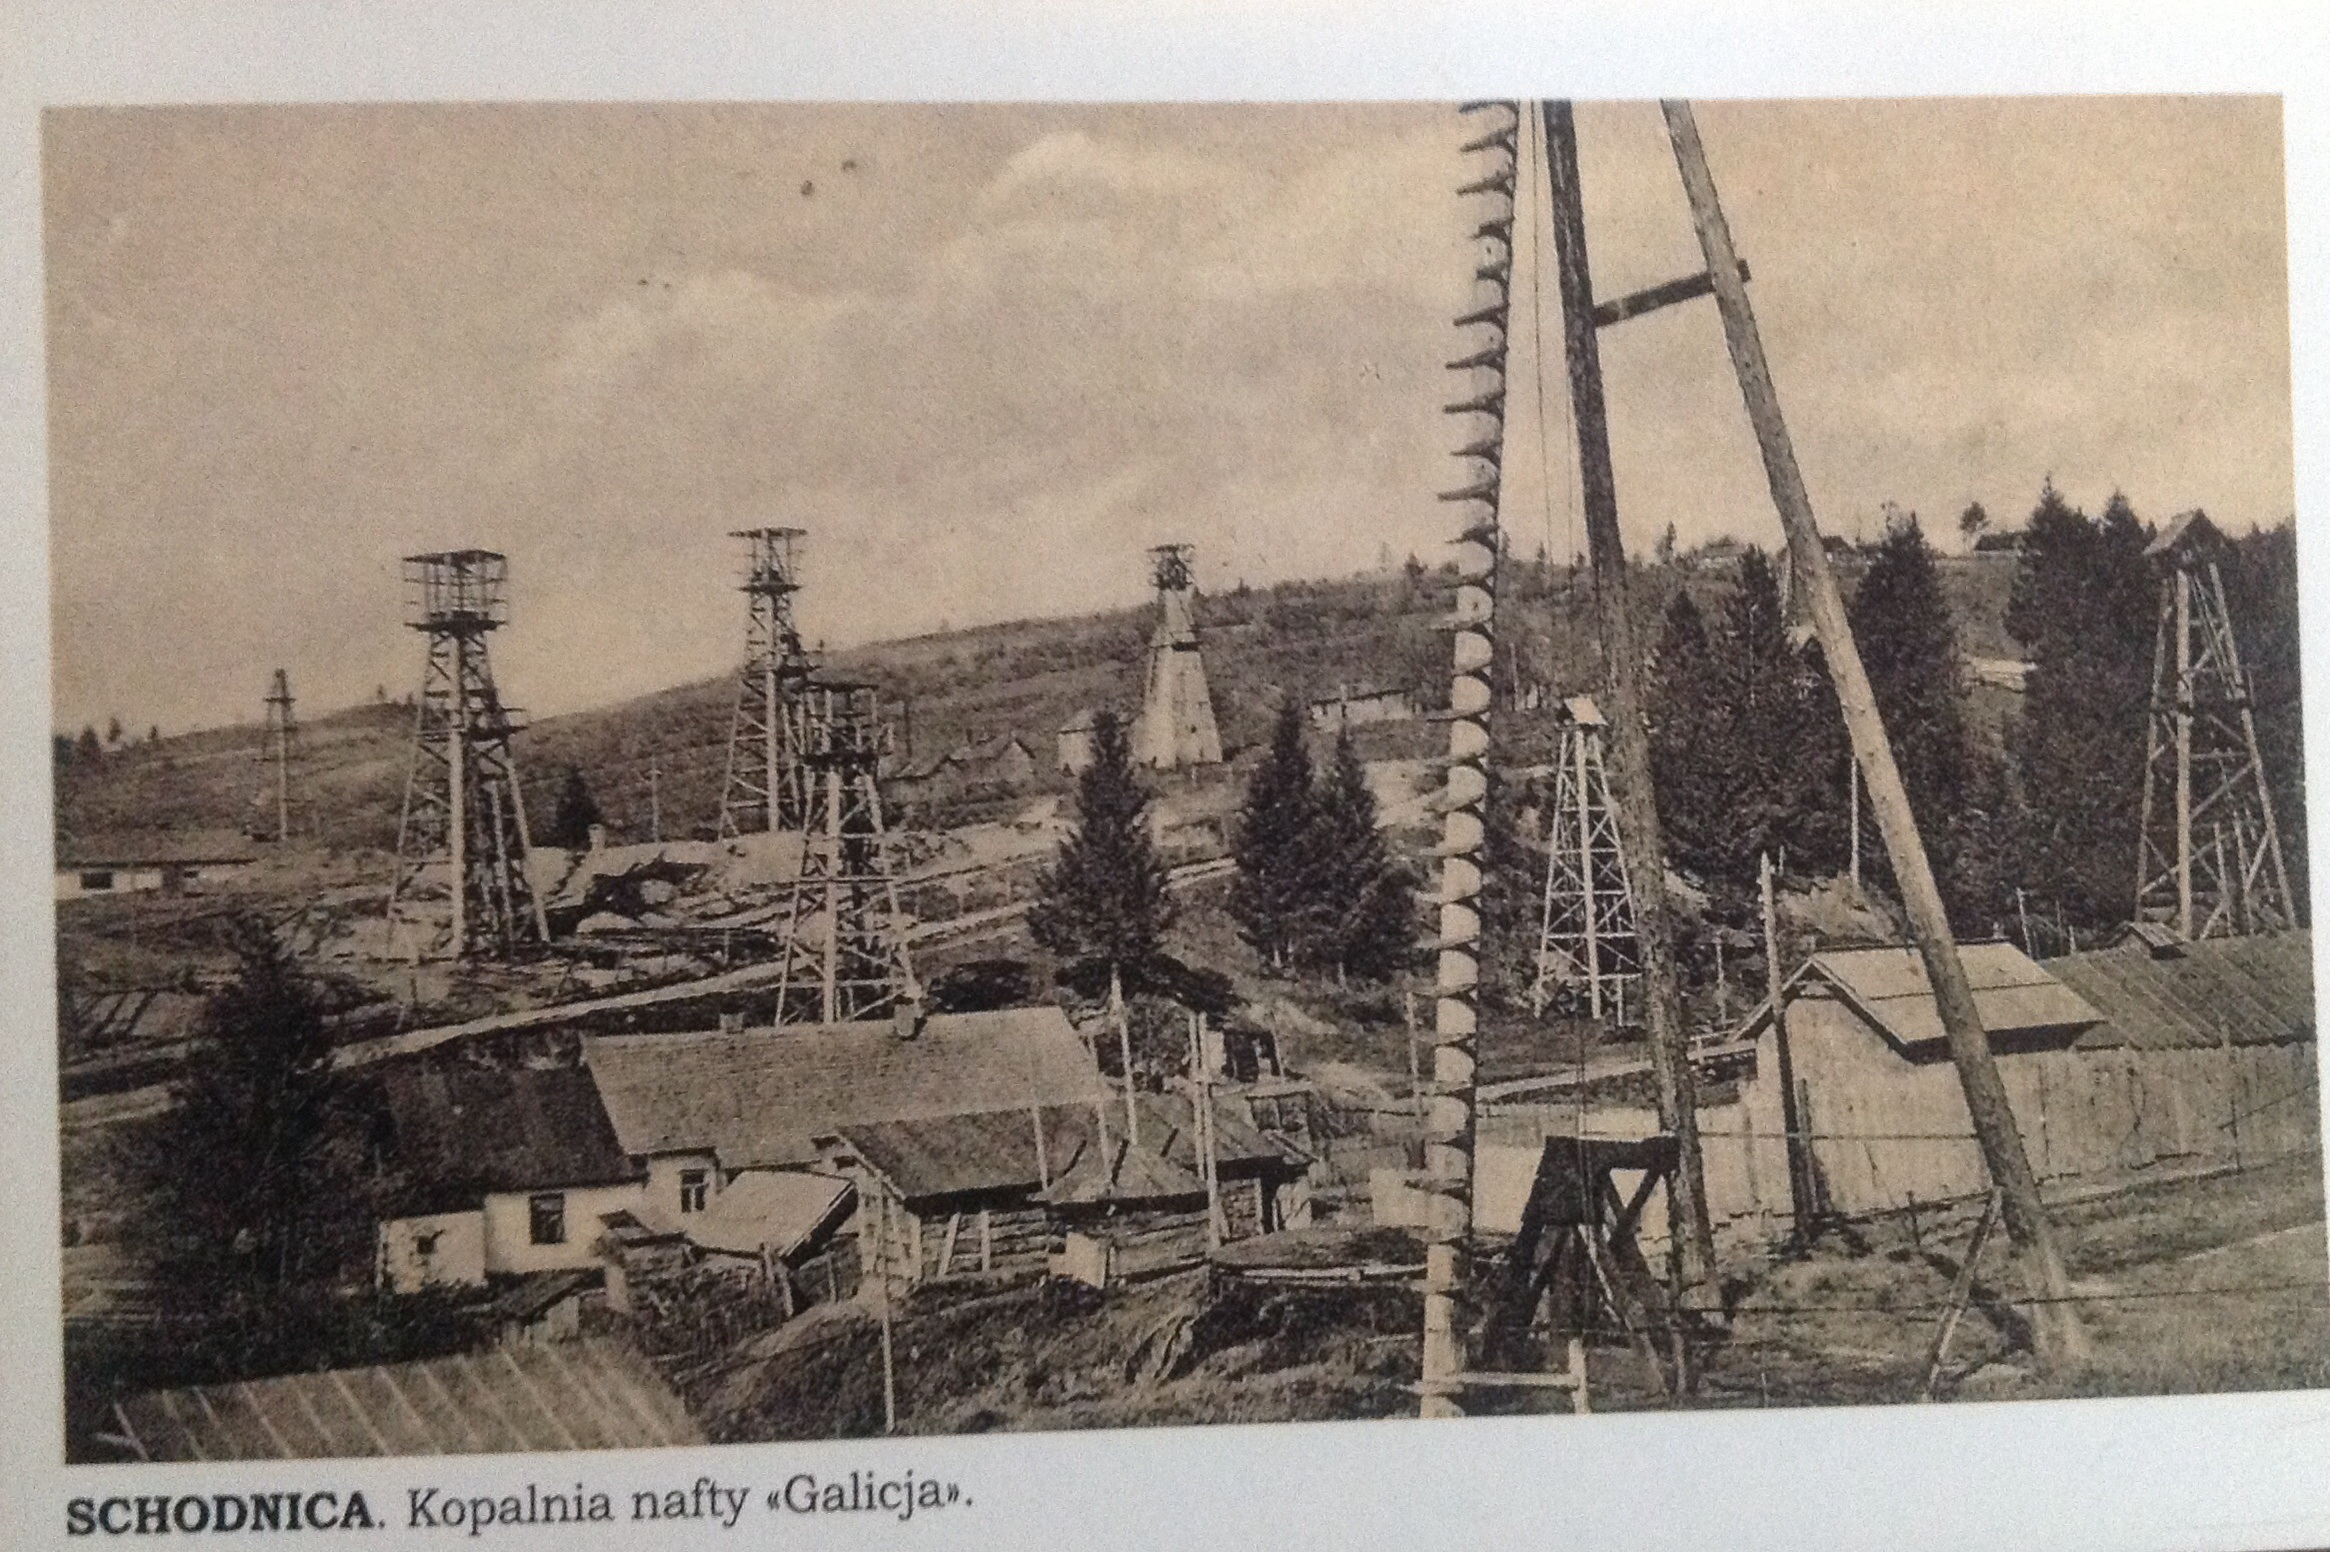 "Shidnytsya, oil well ""Galitsia"""